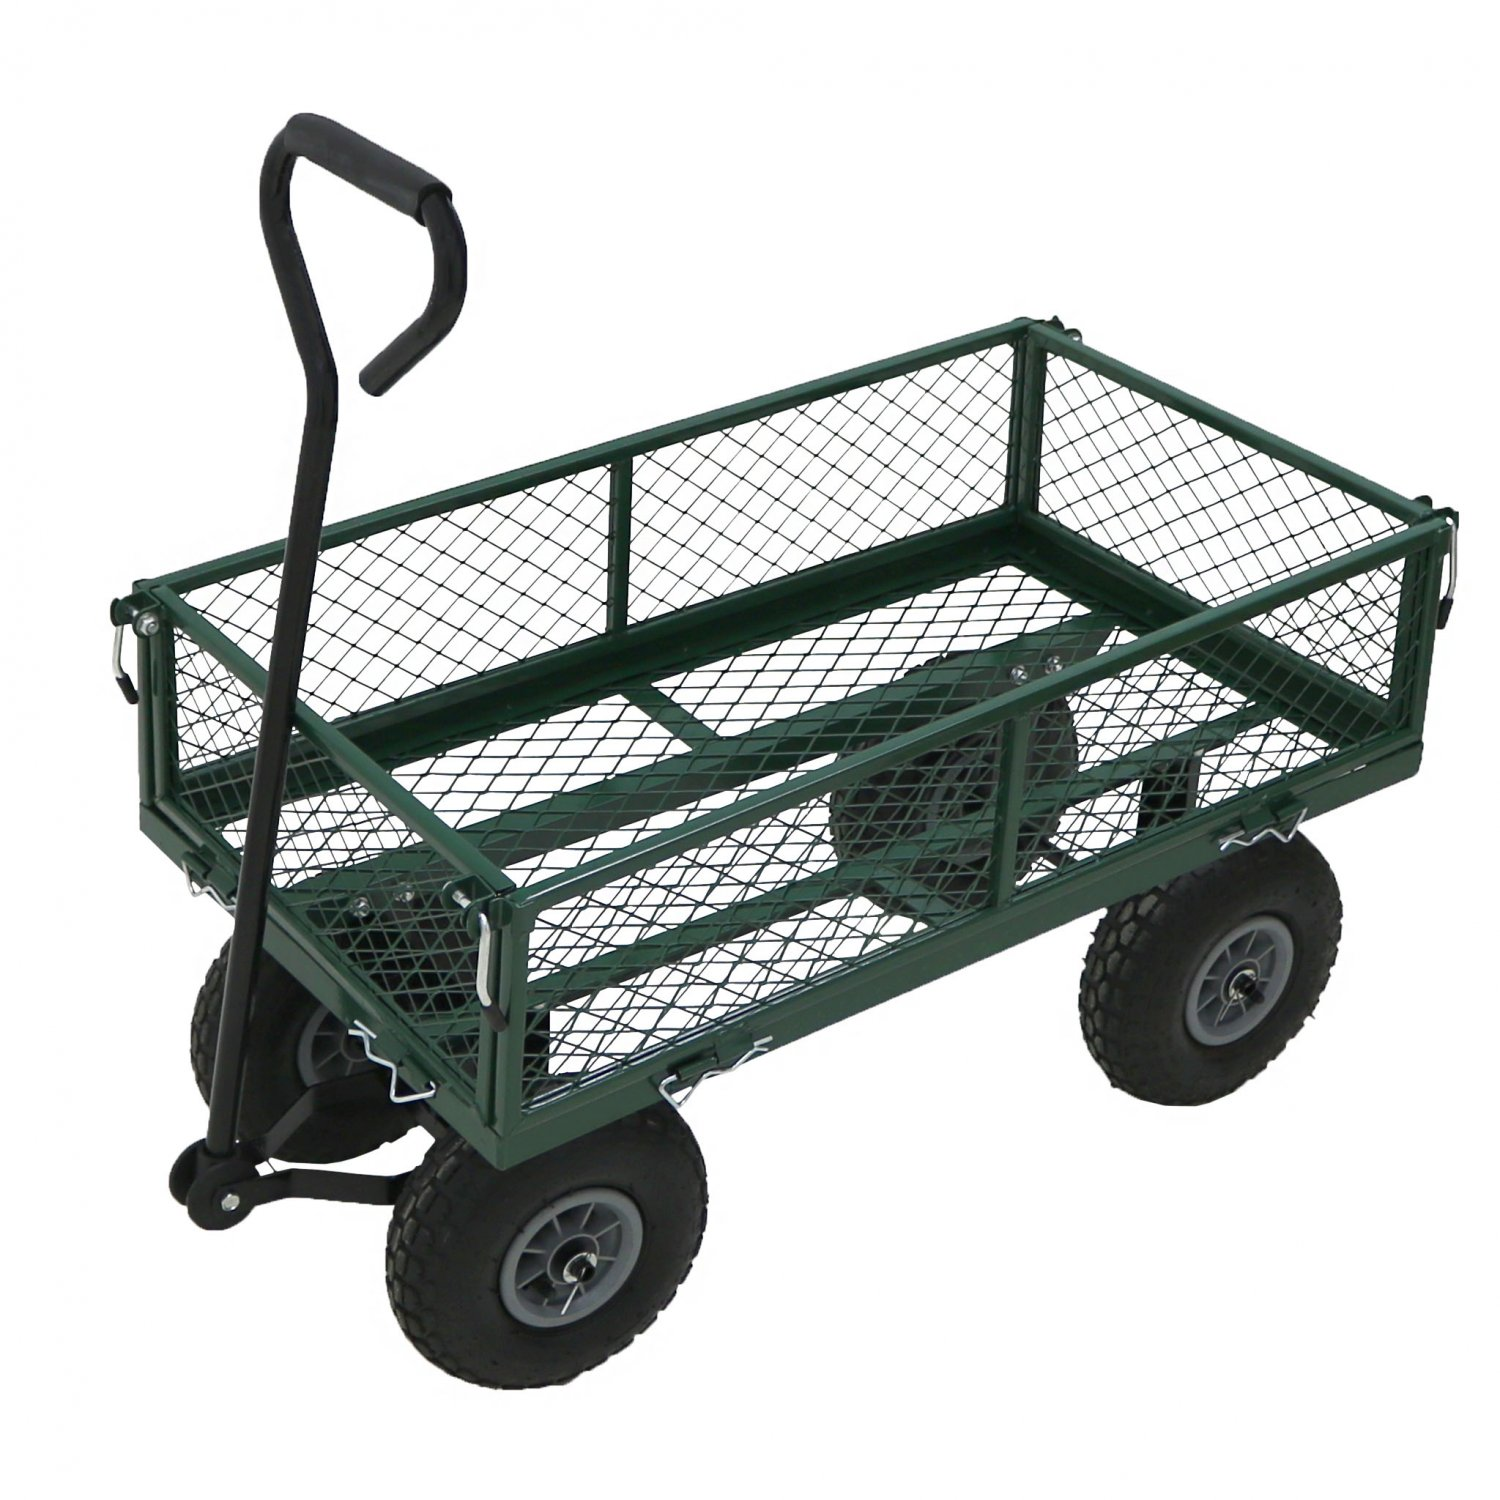 green chair 2005 trailer ostrich beach heavy duty metal gardening trolley cart